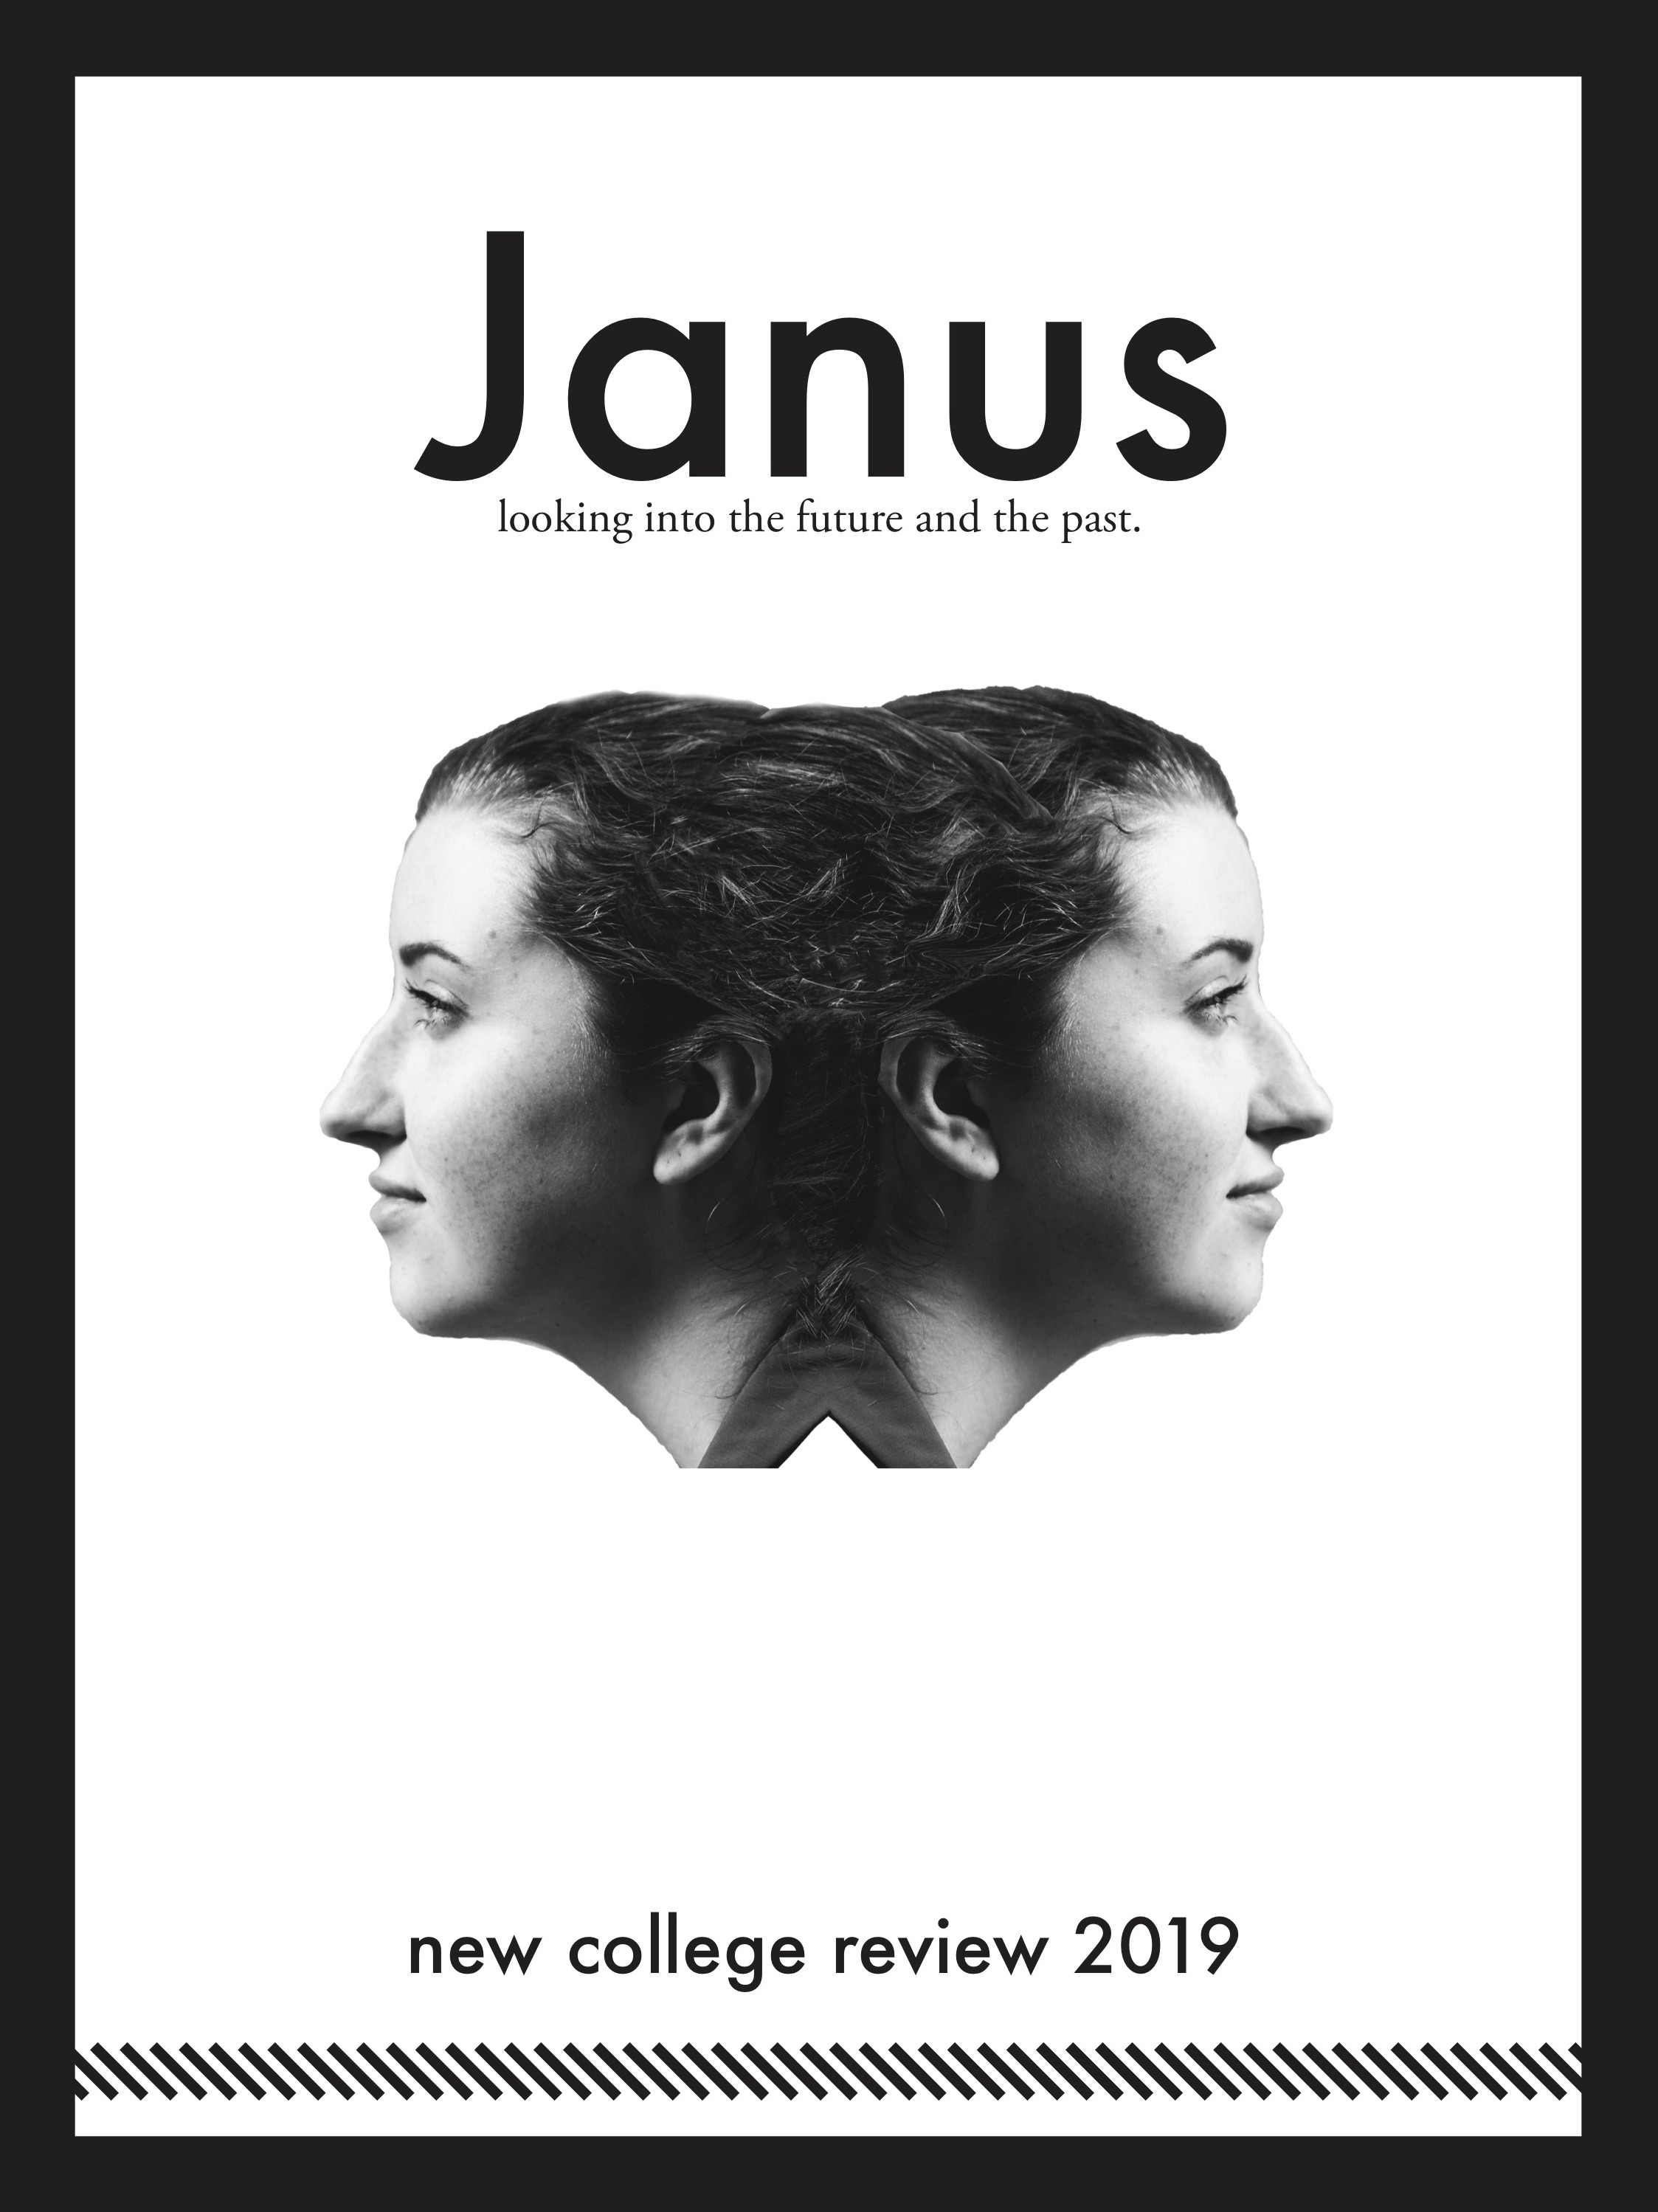 2019 cover of The New College Review featuring two students' faces looking in opposite directions and the title Janus, looking into the future and the past